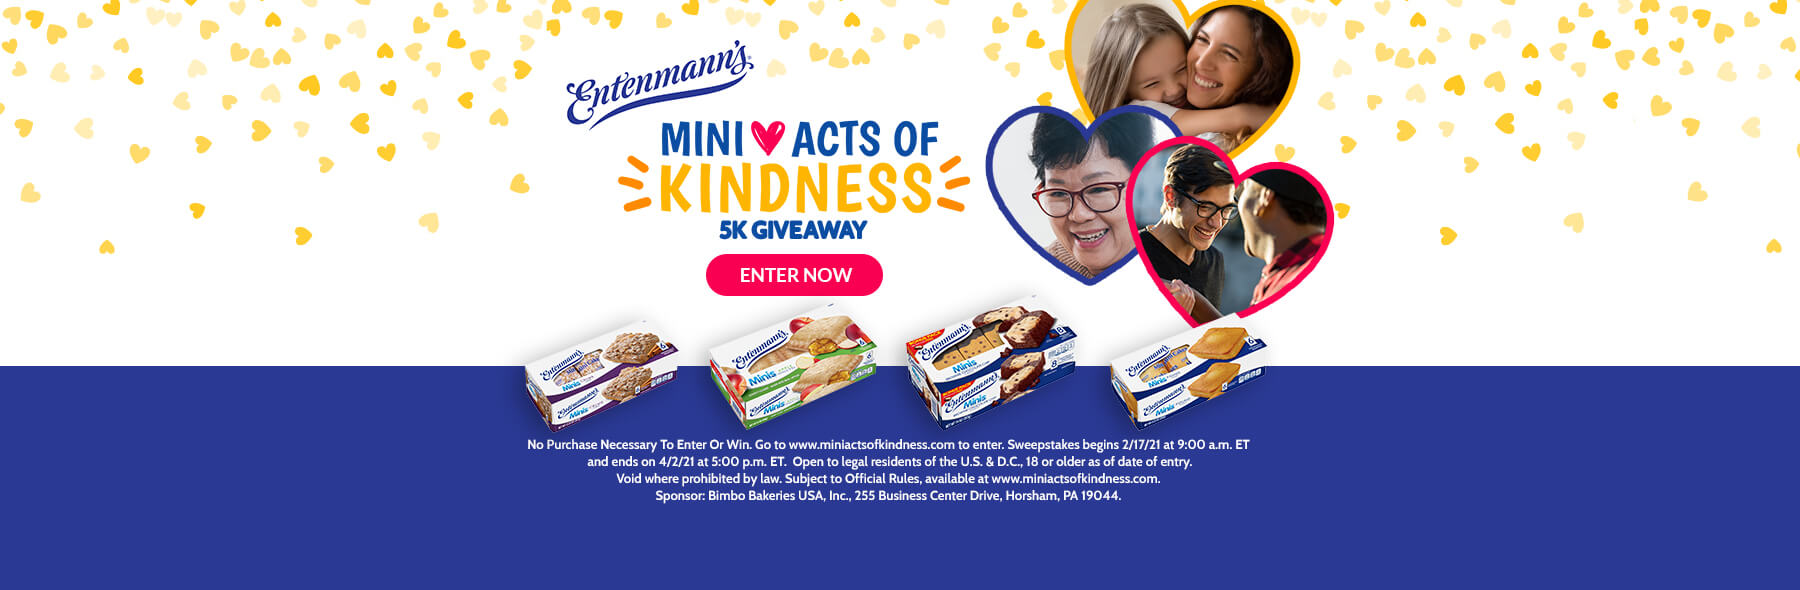 Mini Acts of Kindness